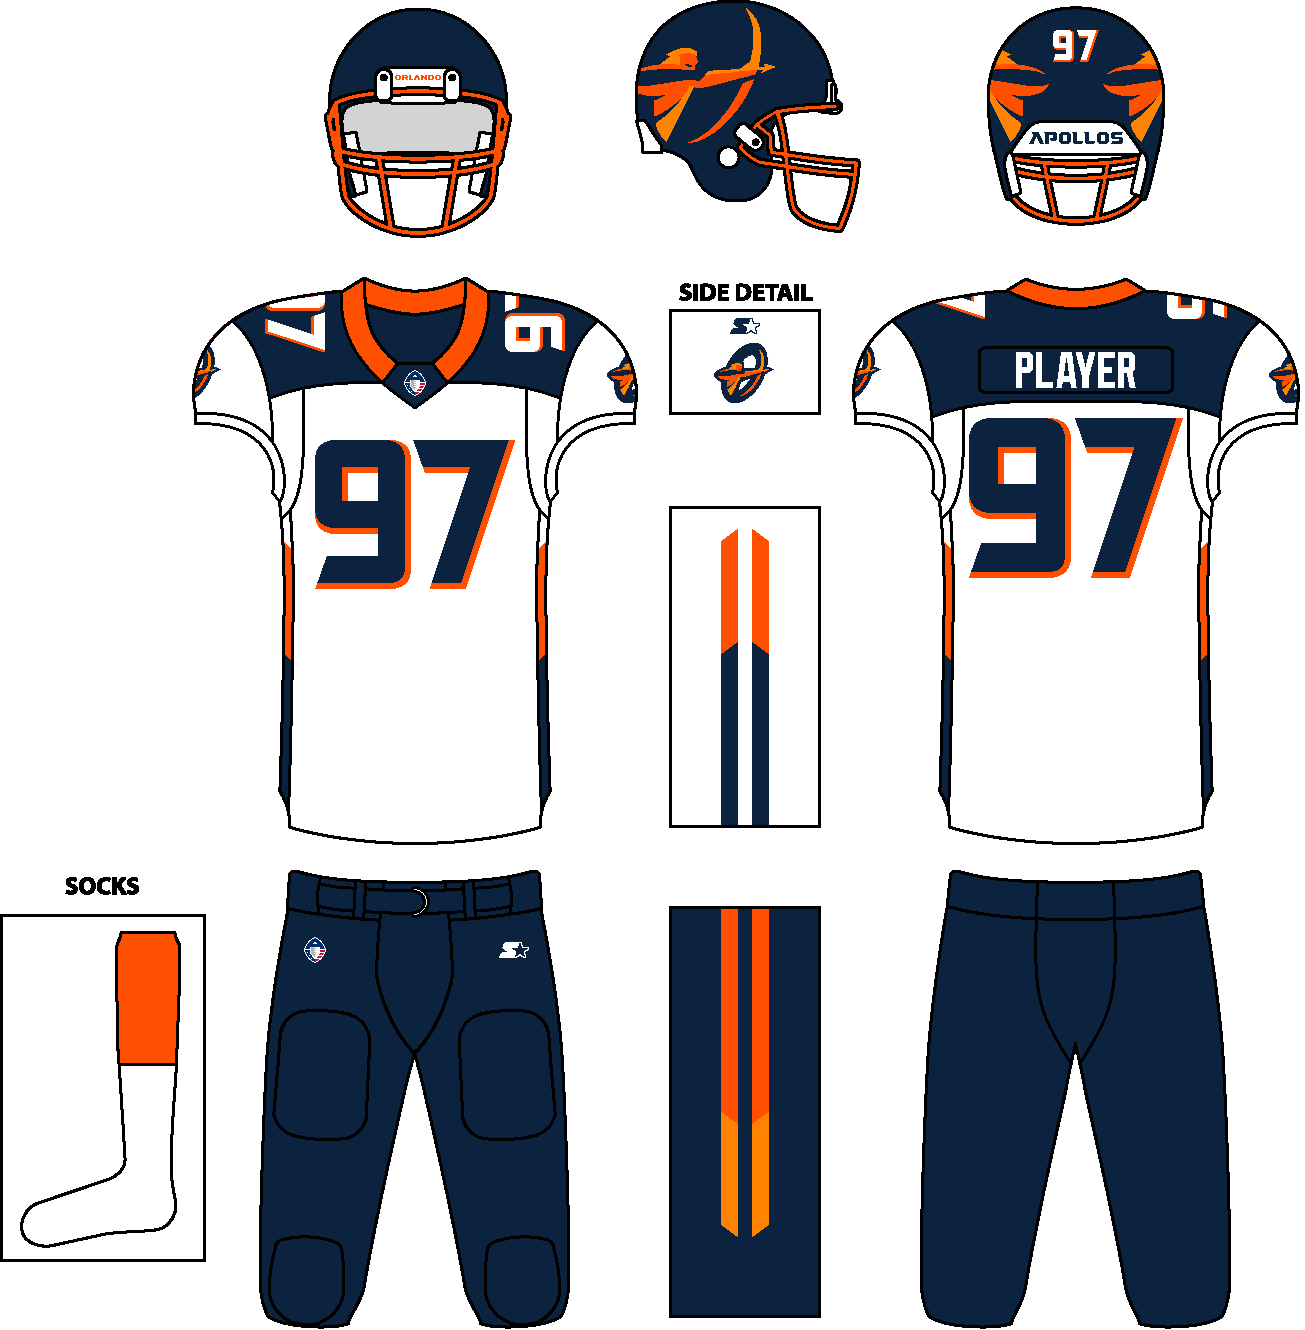 Pin by Jonesdawson on Awesome NCAA Football Uniforms and